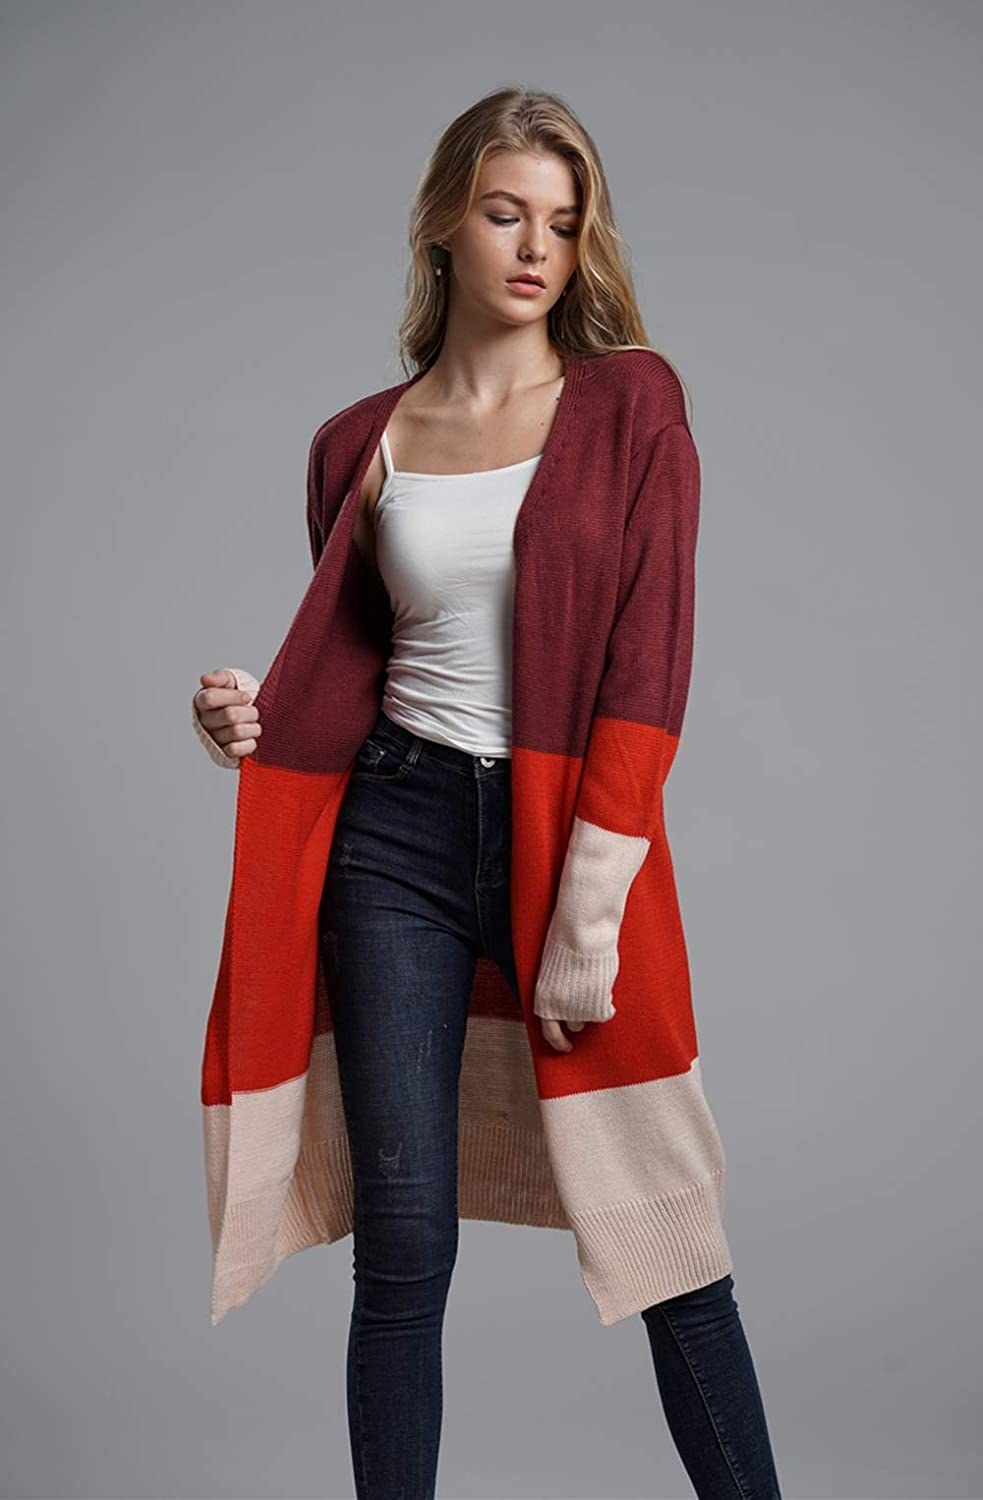 the cardigan with red maroon and beige block stripes